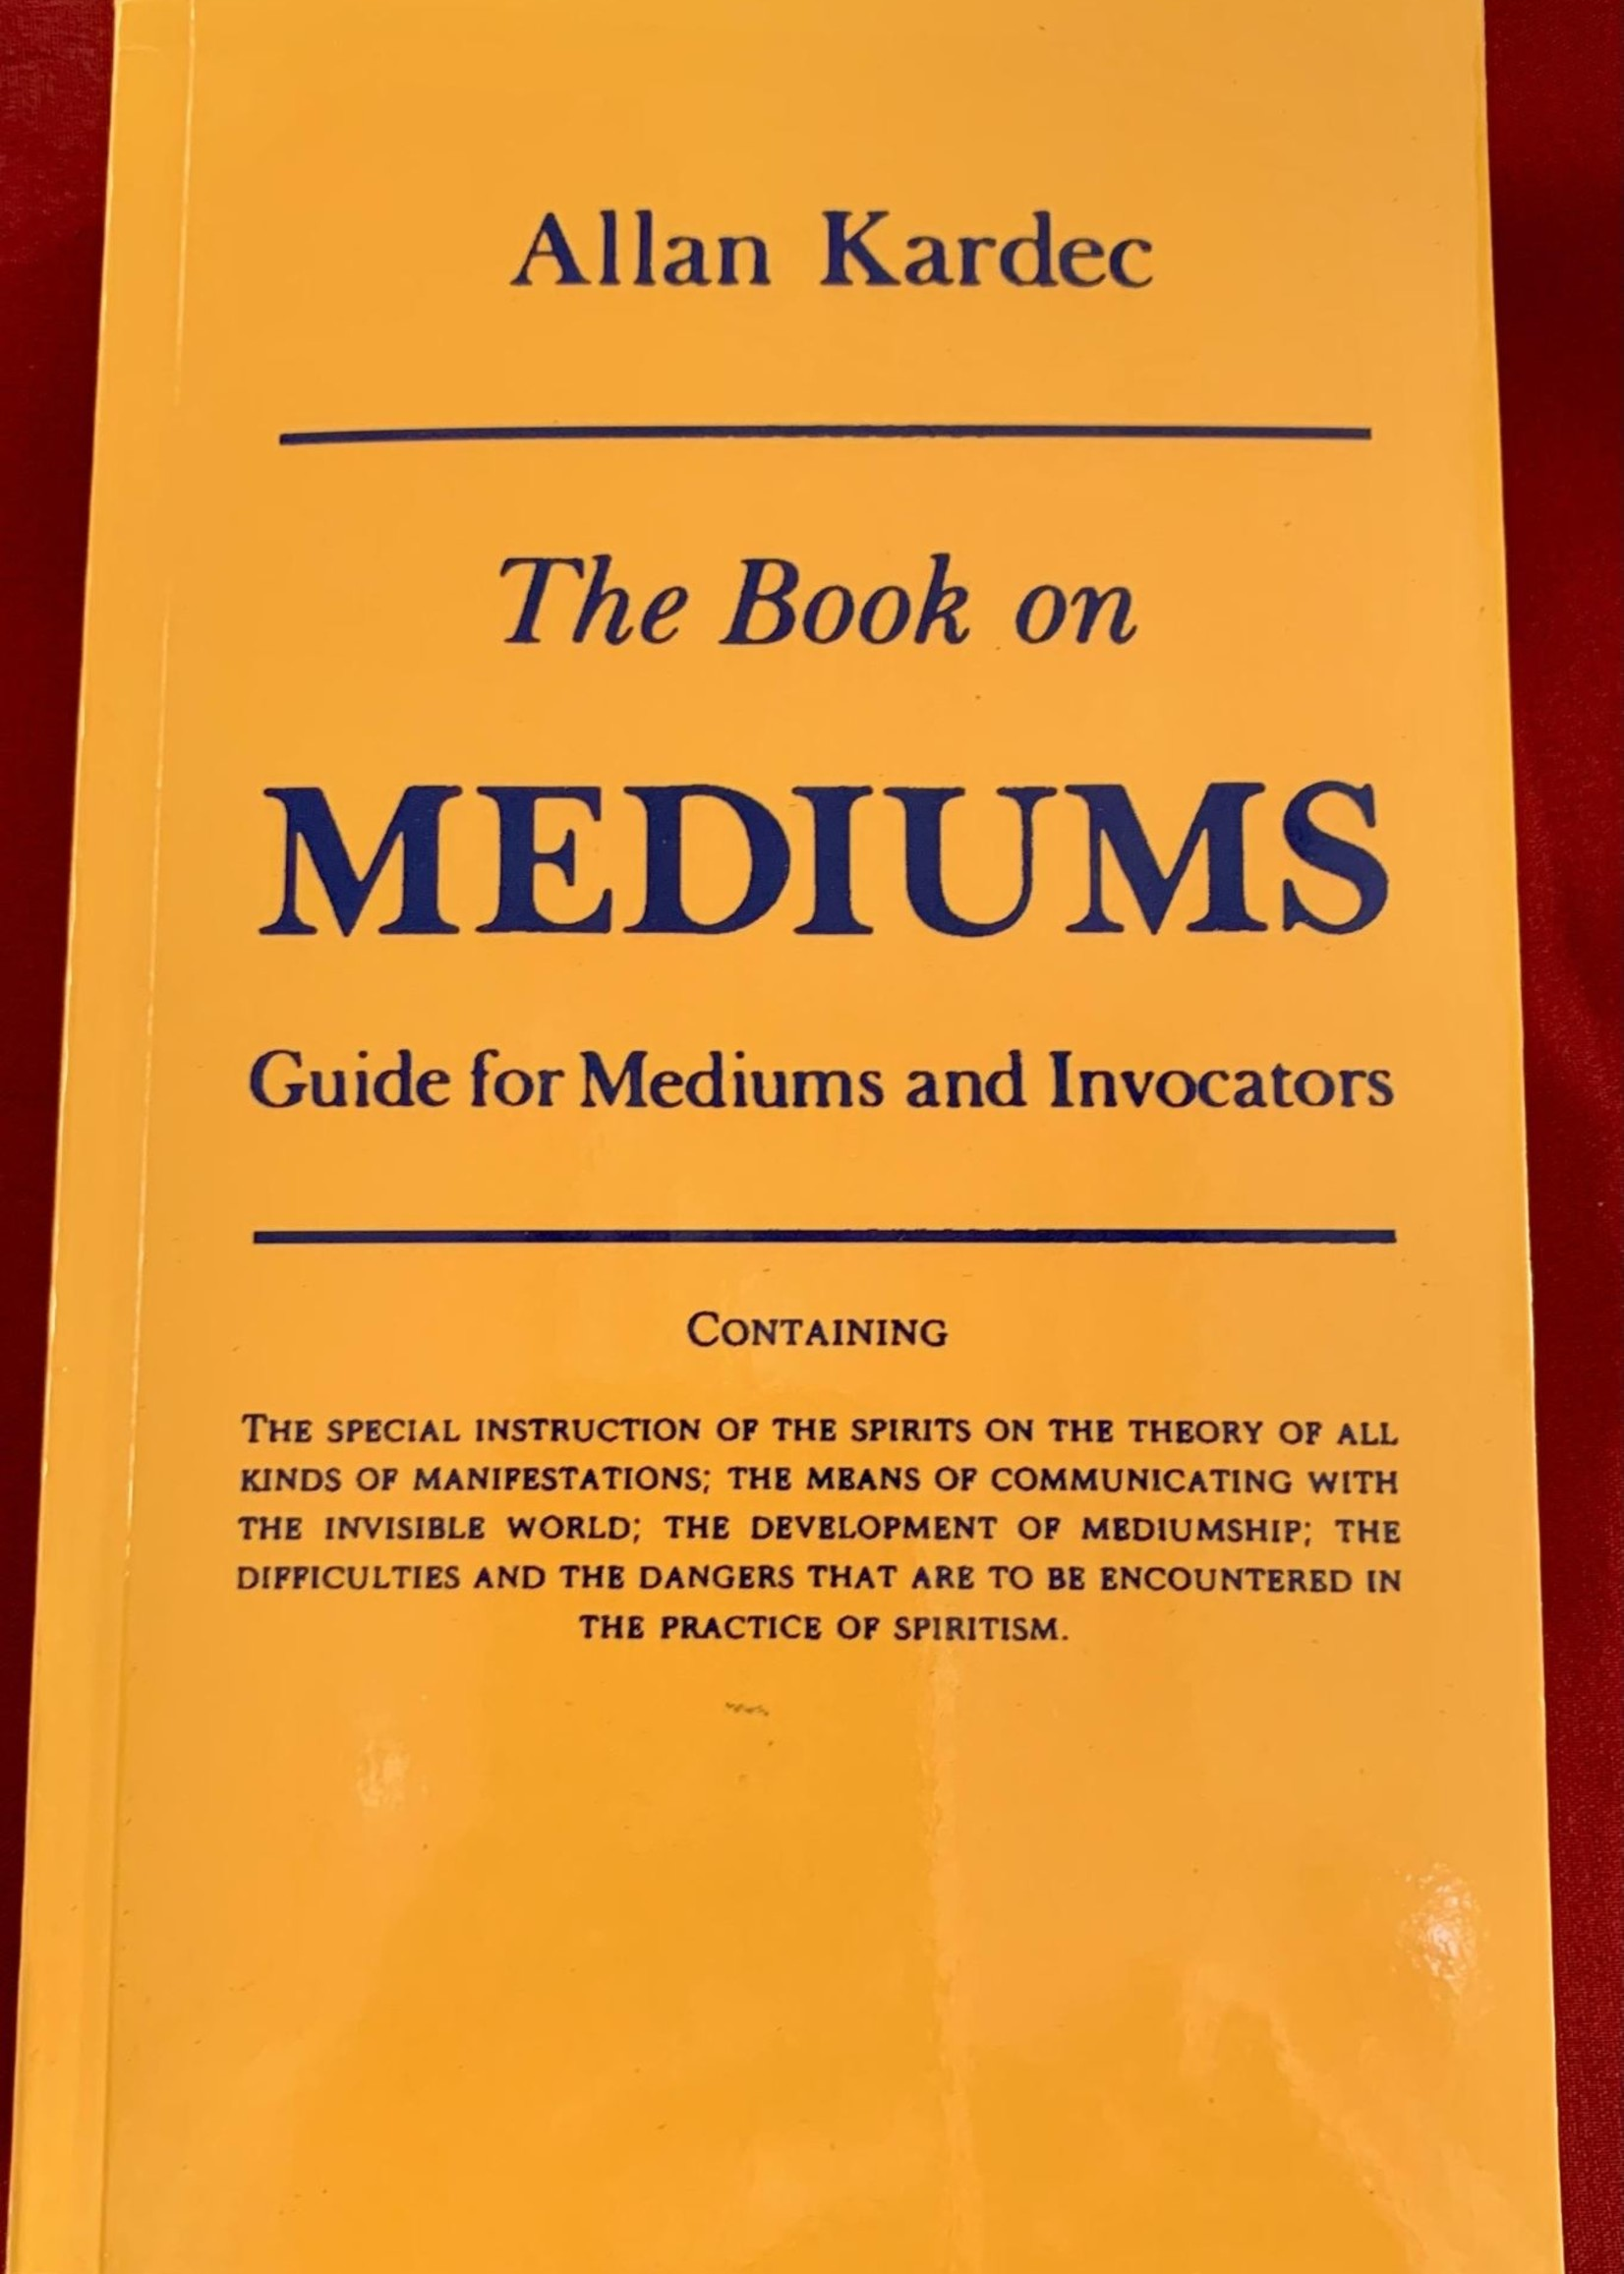 The Book on Mediums Guide for Mediums and Invocators - Allan Kardec